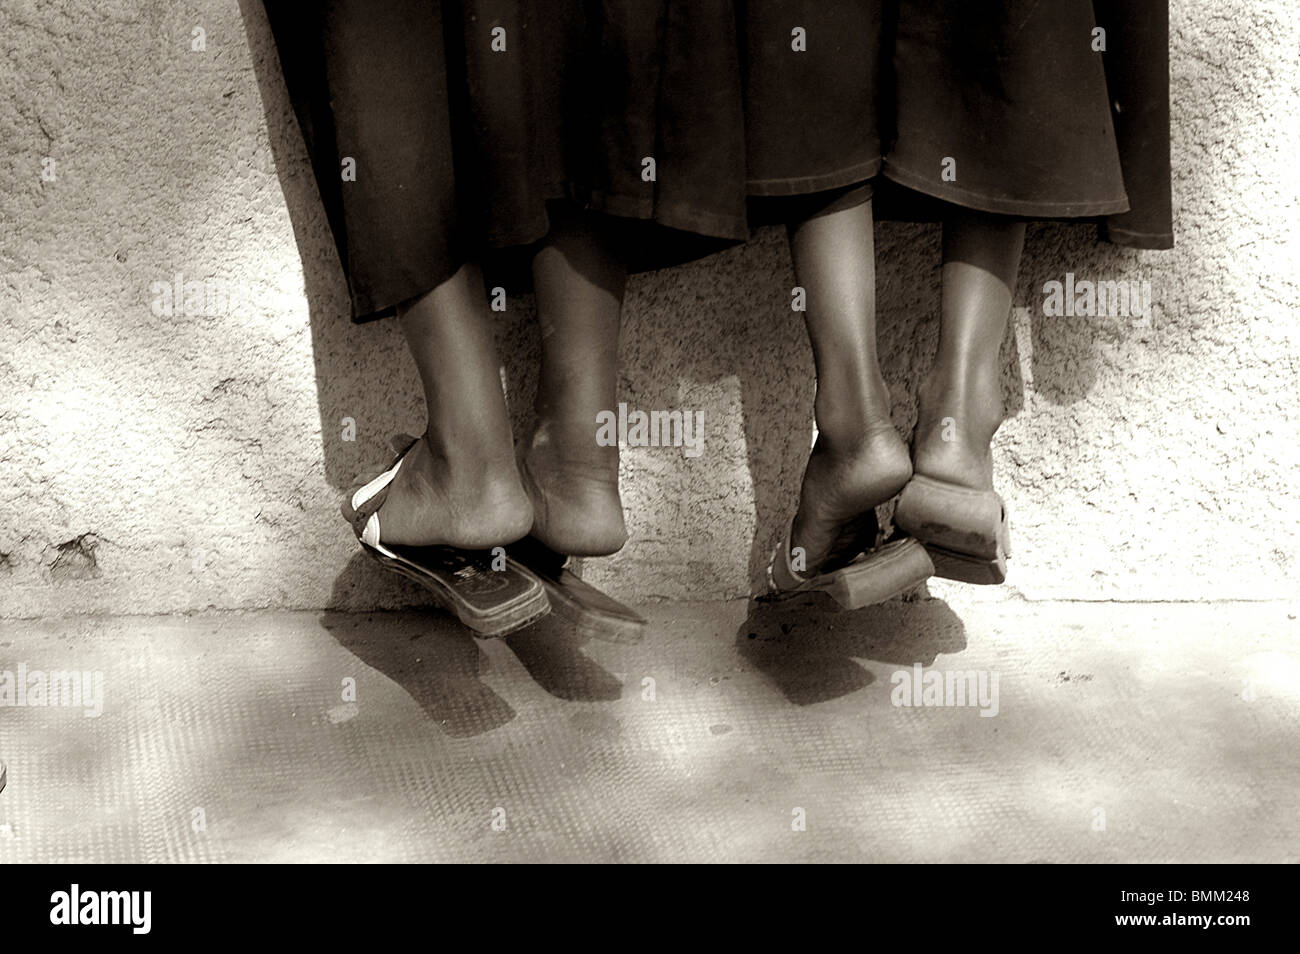 Niger, Niamey, Feet, plastic slippers and long black skirts of two african schoolgirls suspended. - Stock Image